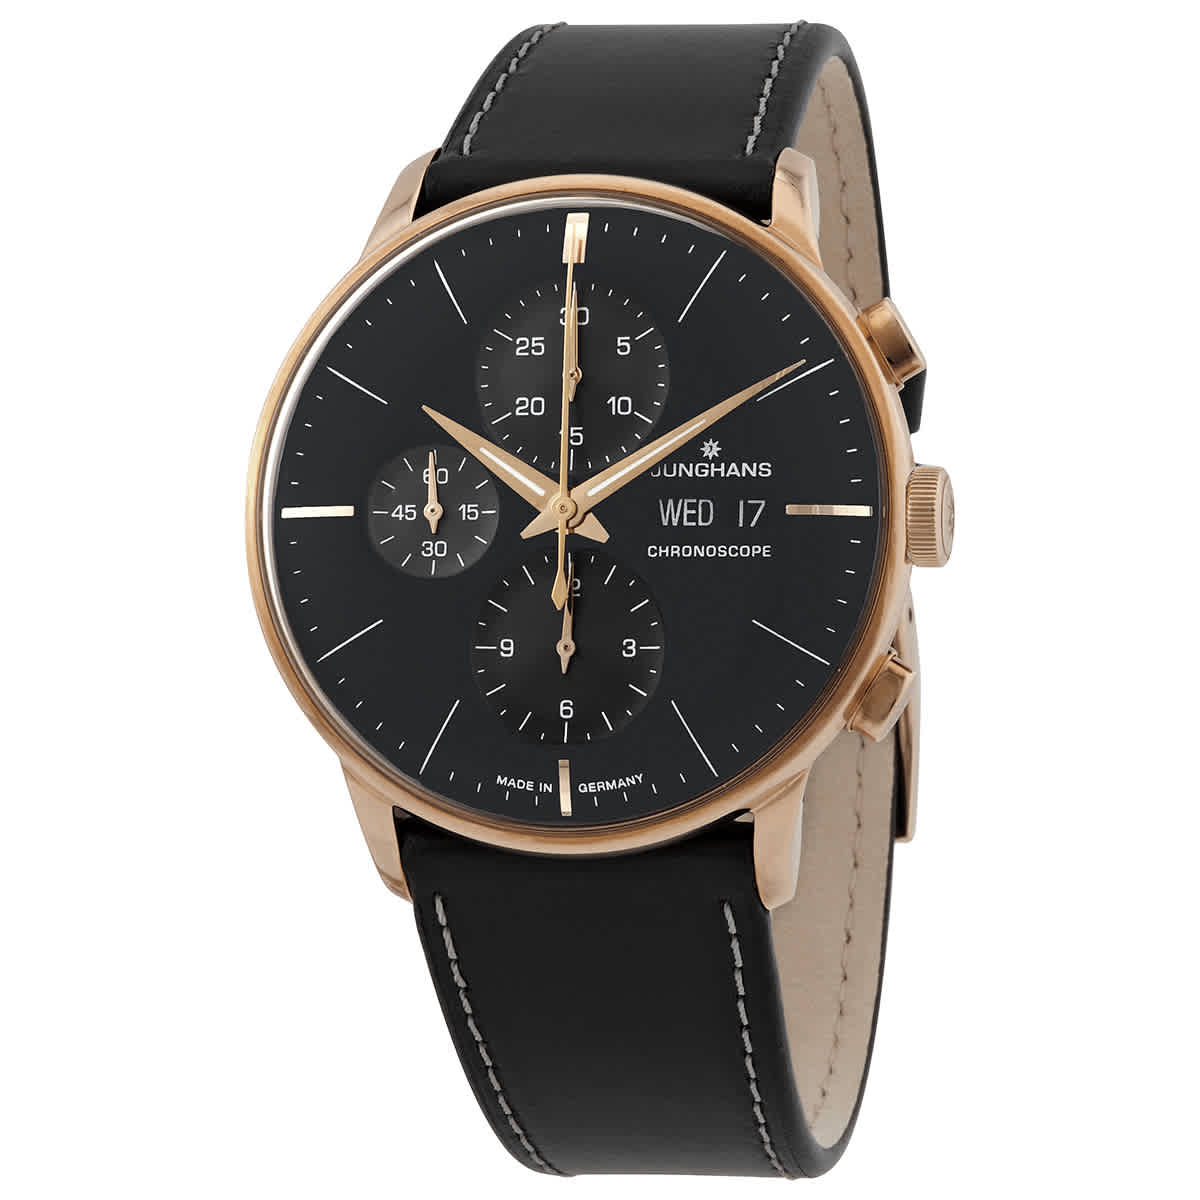 Junghans Meister Chronoscope Chronograph Automatic Black Dial Mens Watch 027/7923.01 In Black,gold Tone,pink,rose Gold Tone